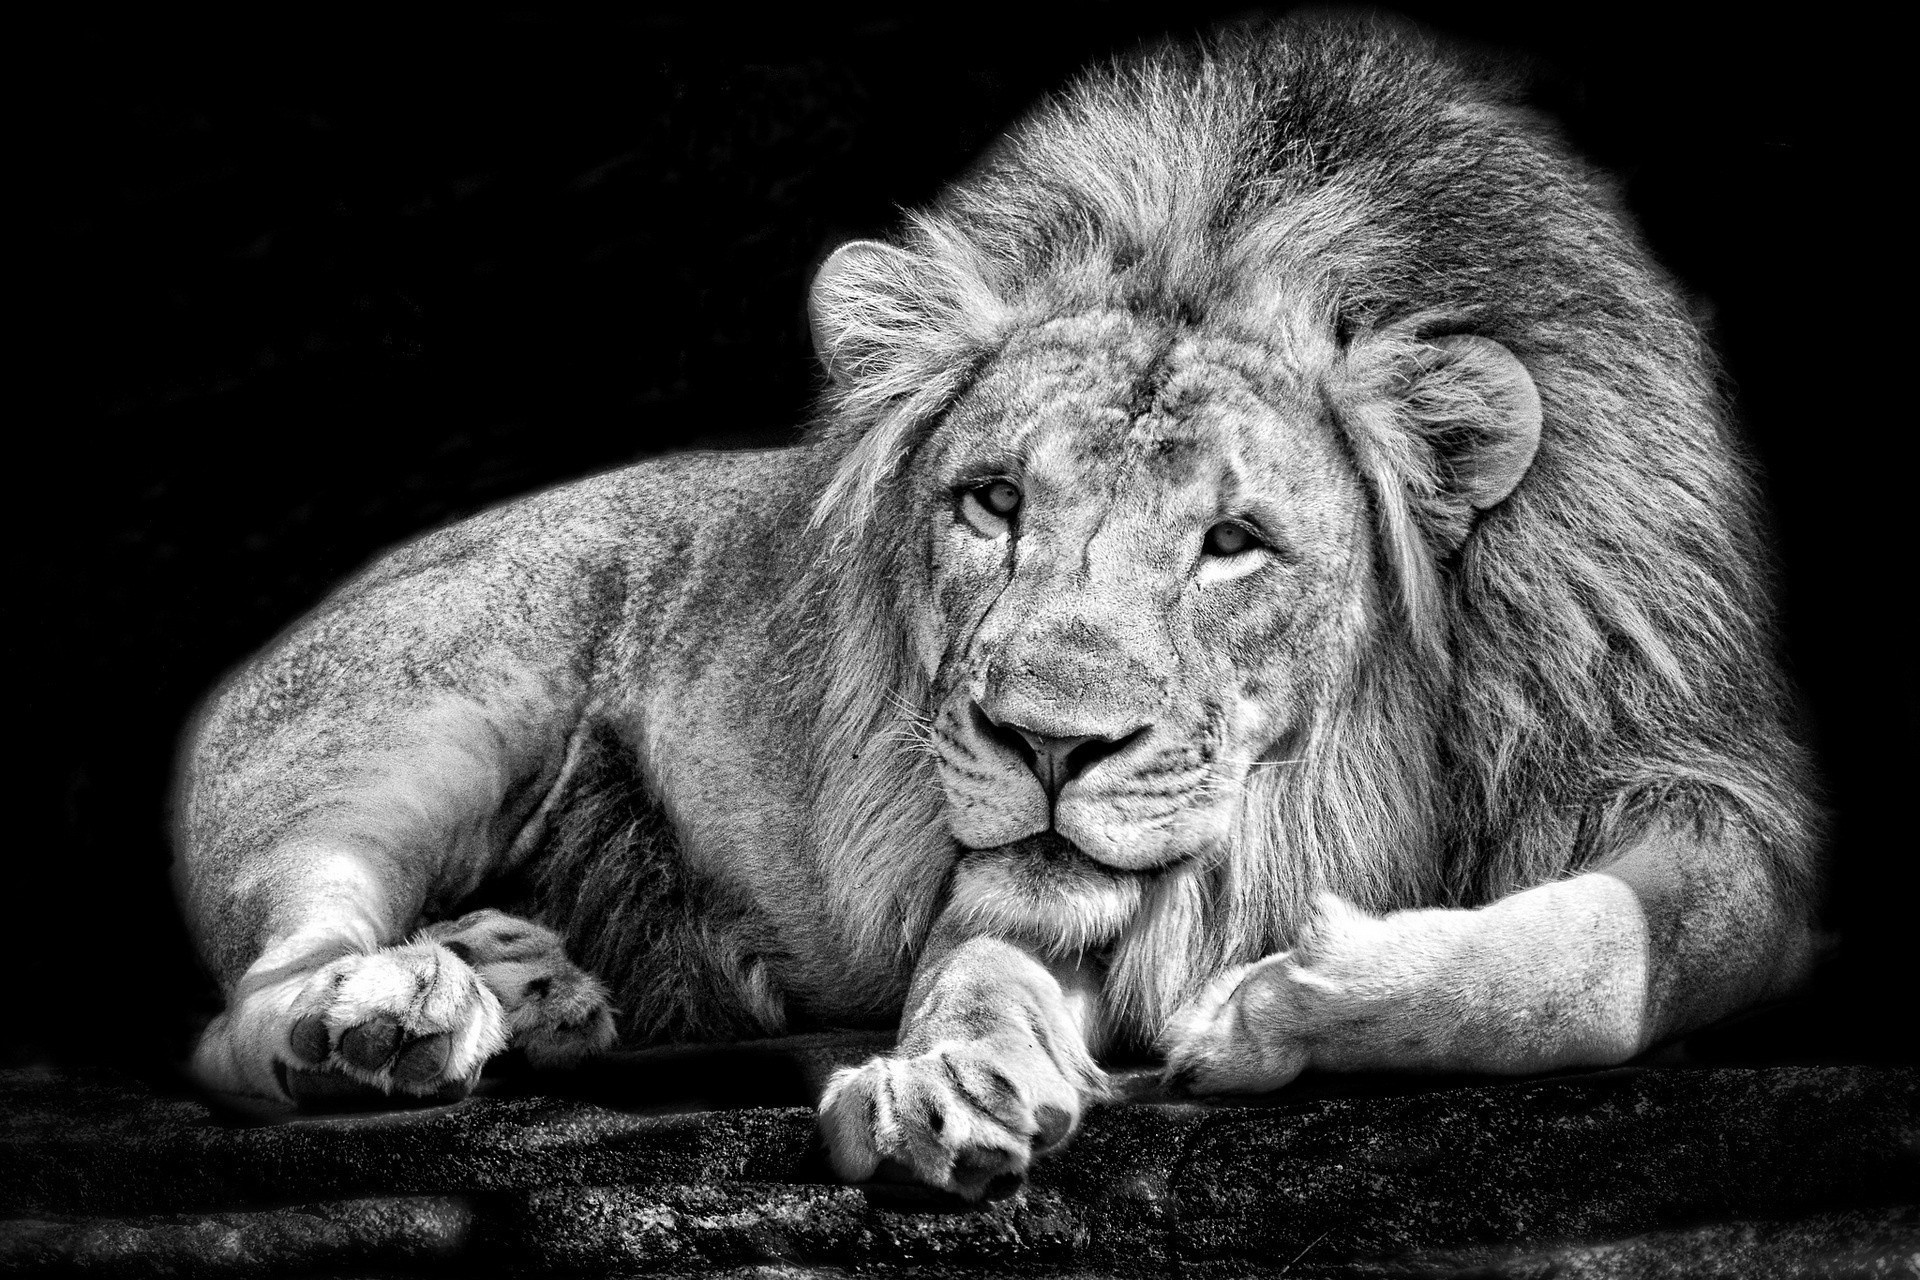 Animals Lion Wallpapers Hd Desktop And Mobile Backgrounds: White Lion Wallpapers (66+ Images